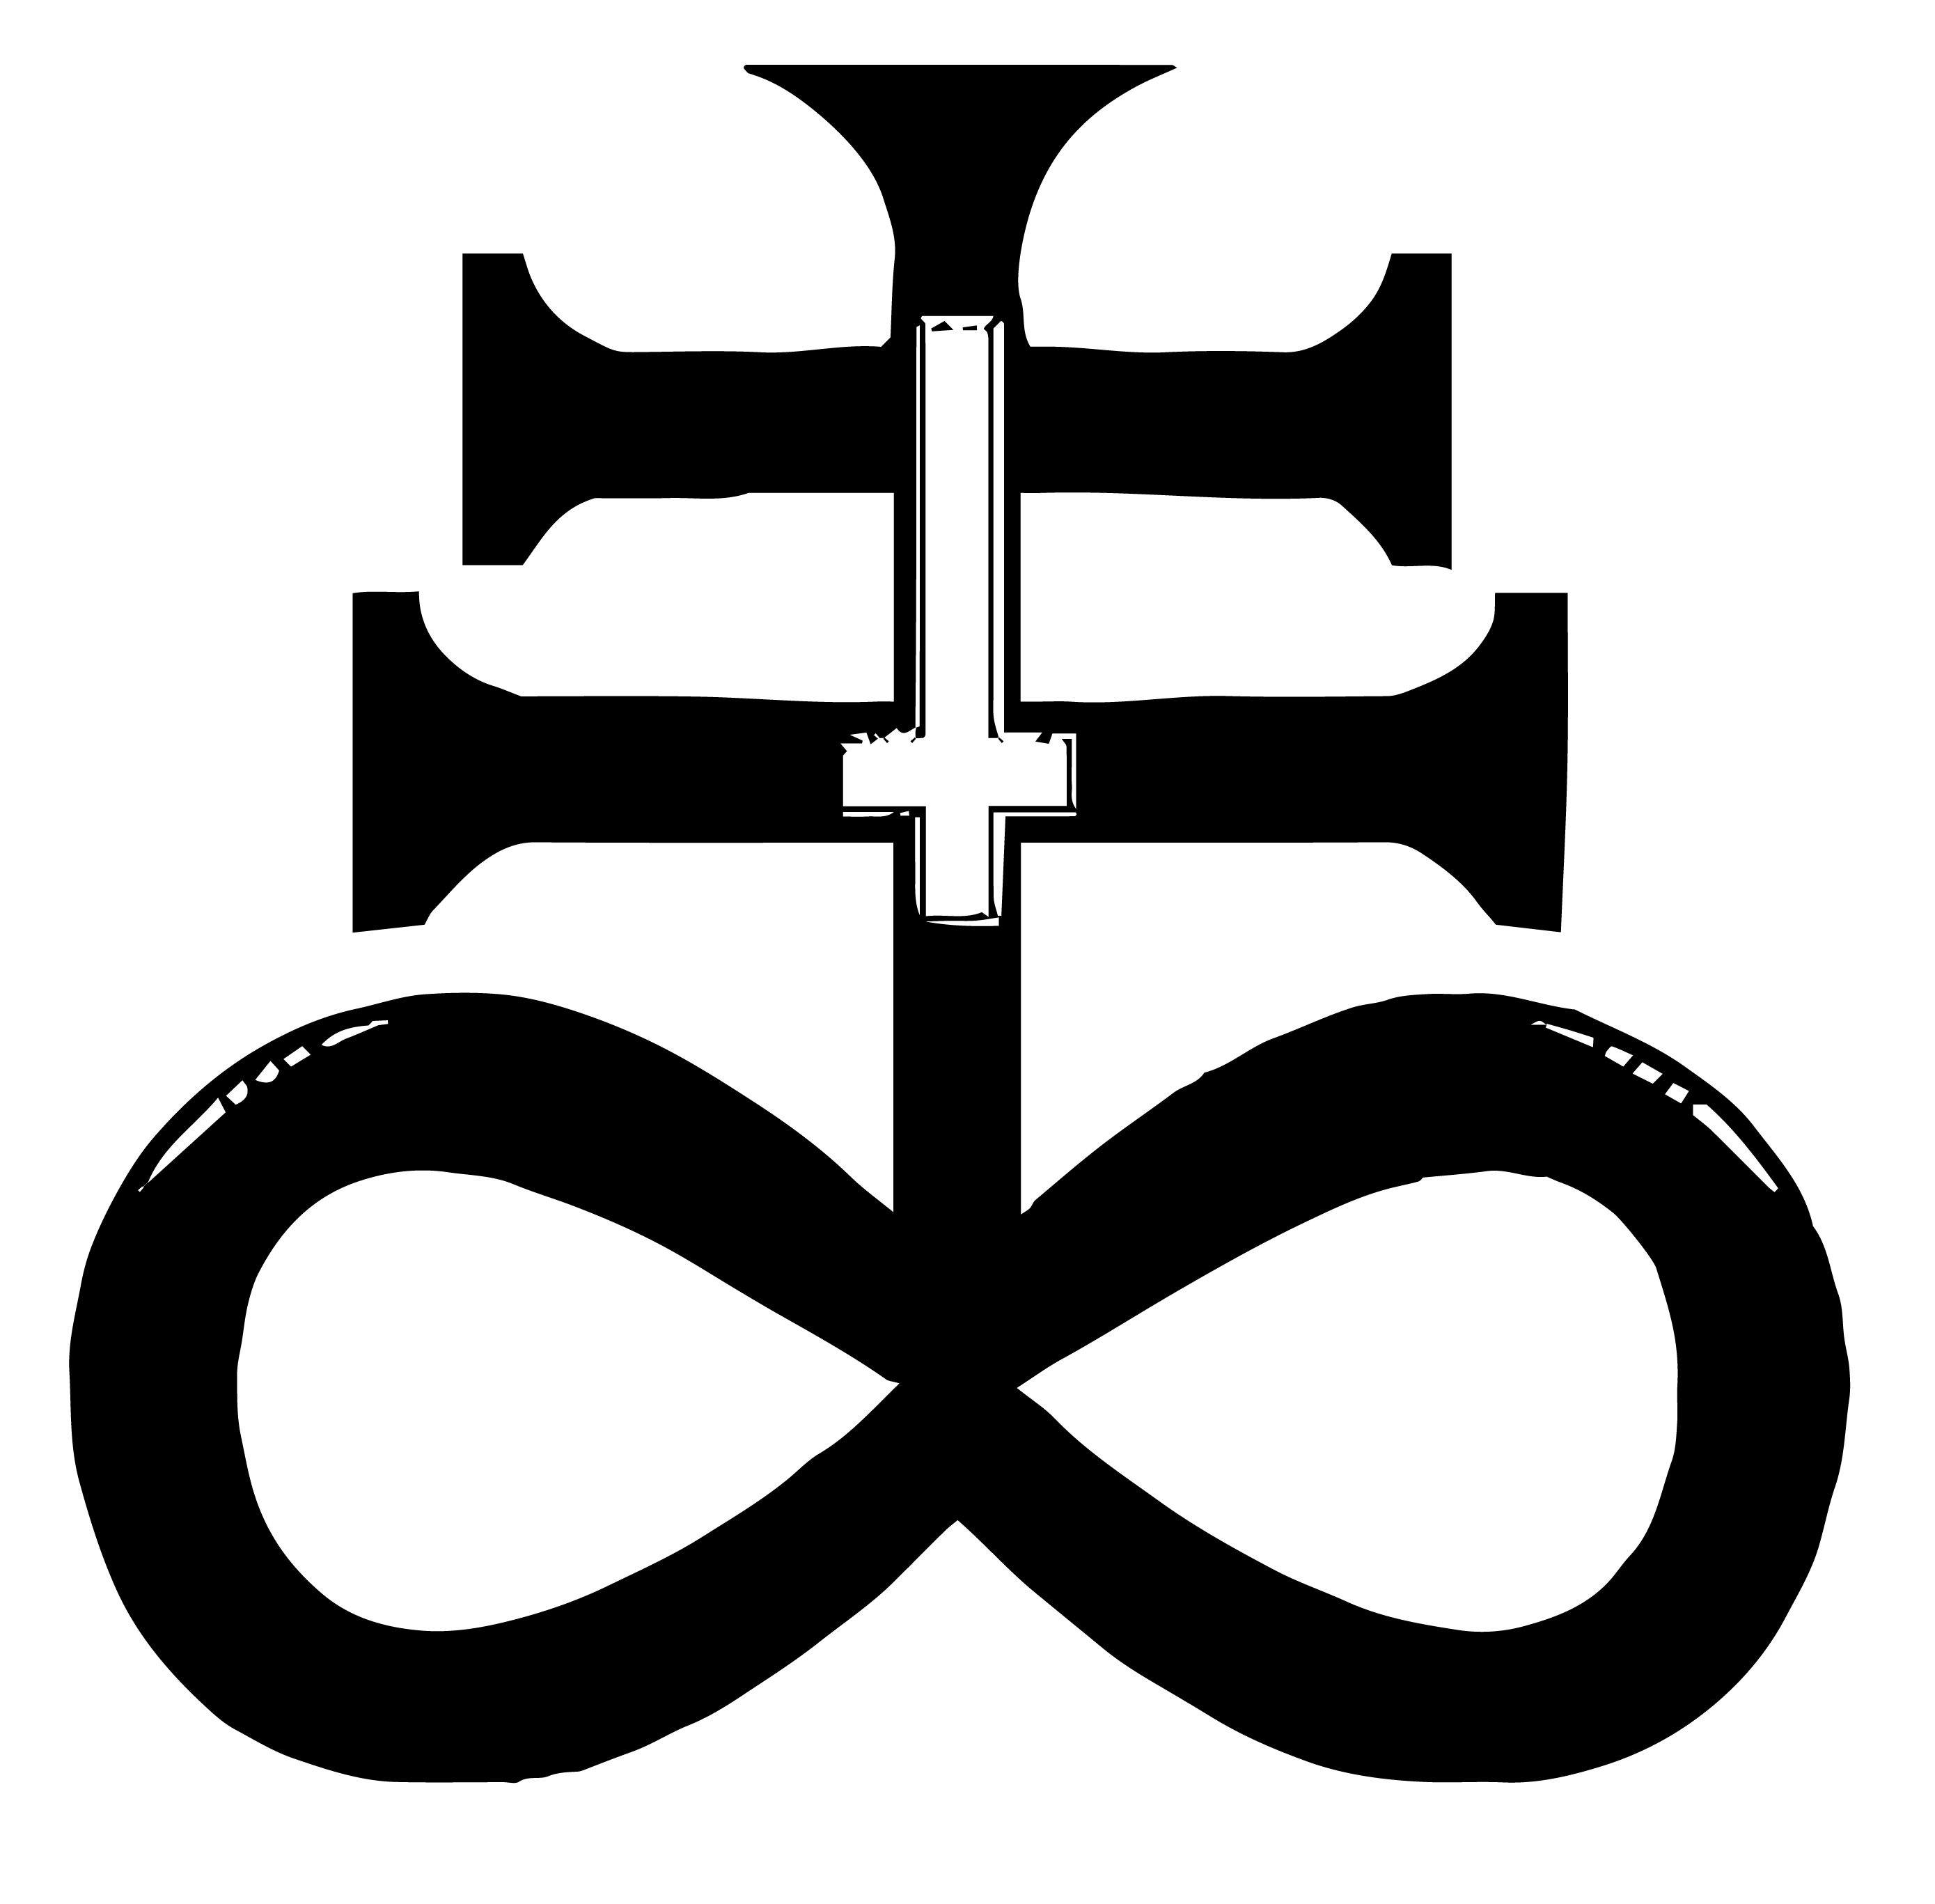 Satans cross symbols and meanings pinterest cross symbol read all about the leviathan cross also known as satans crosssatanic cross its meaning as the antichrist symbol how it changed throughout history biocorpaavc